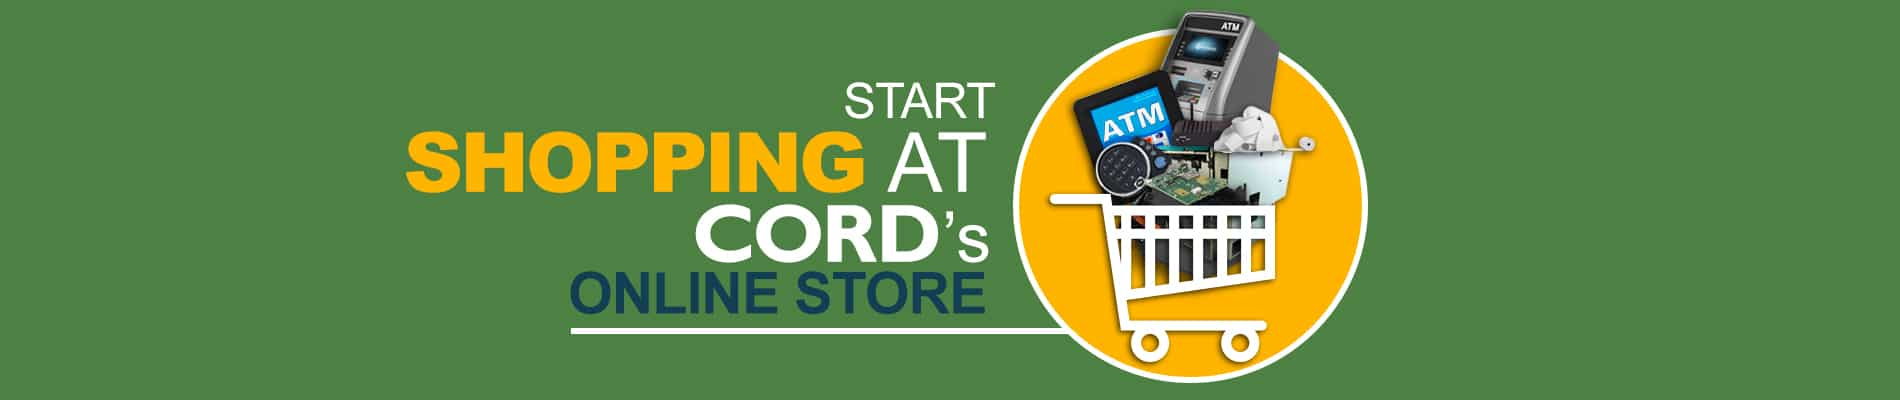 Start shopping at CORD's online store